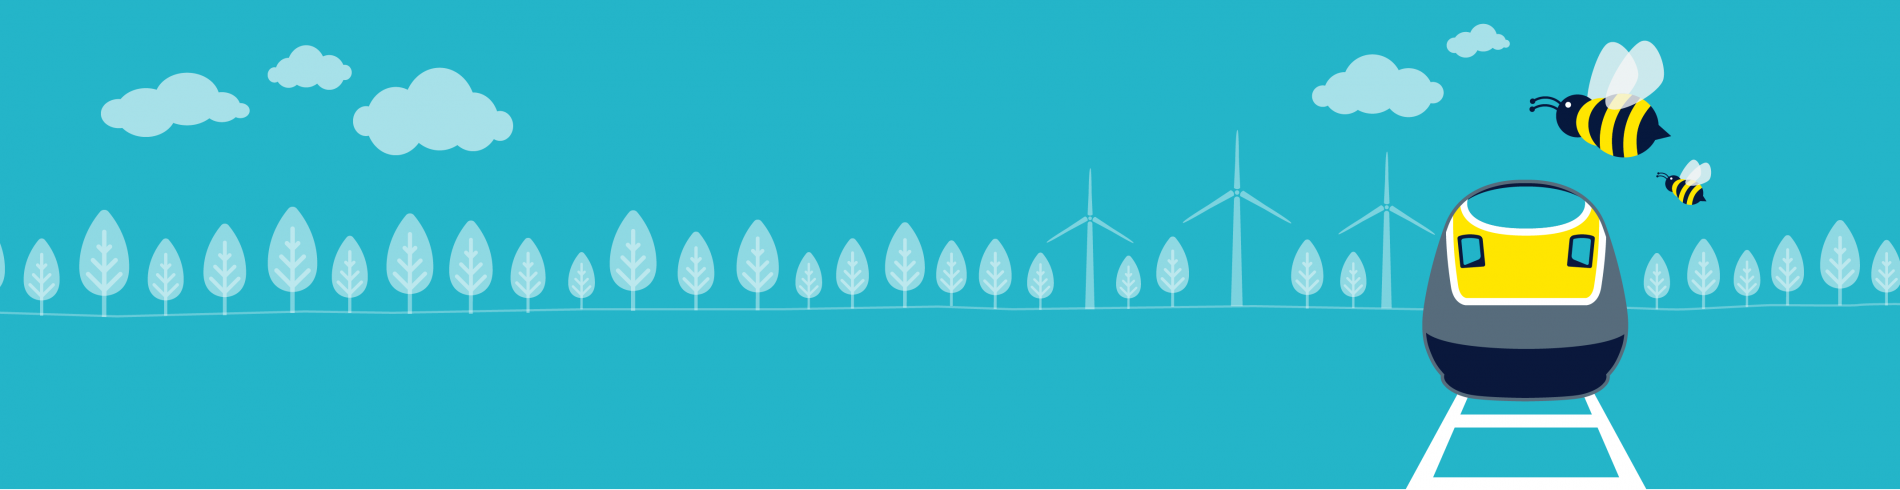 Eurostar train graphic with trees and wind turbines